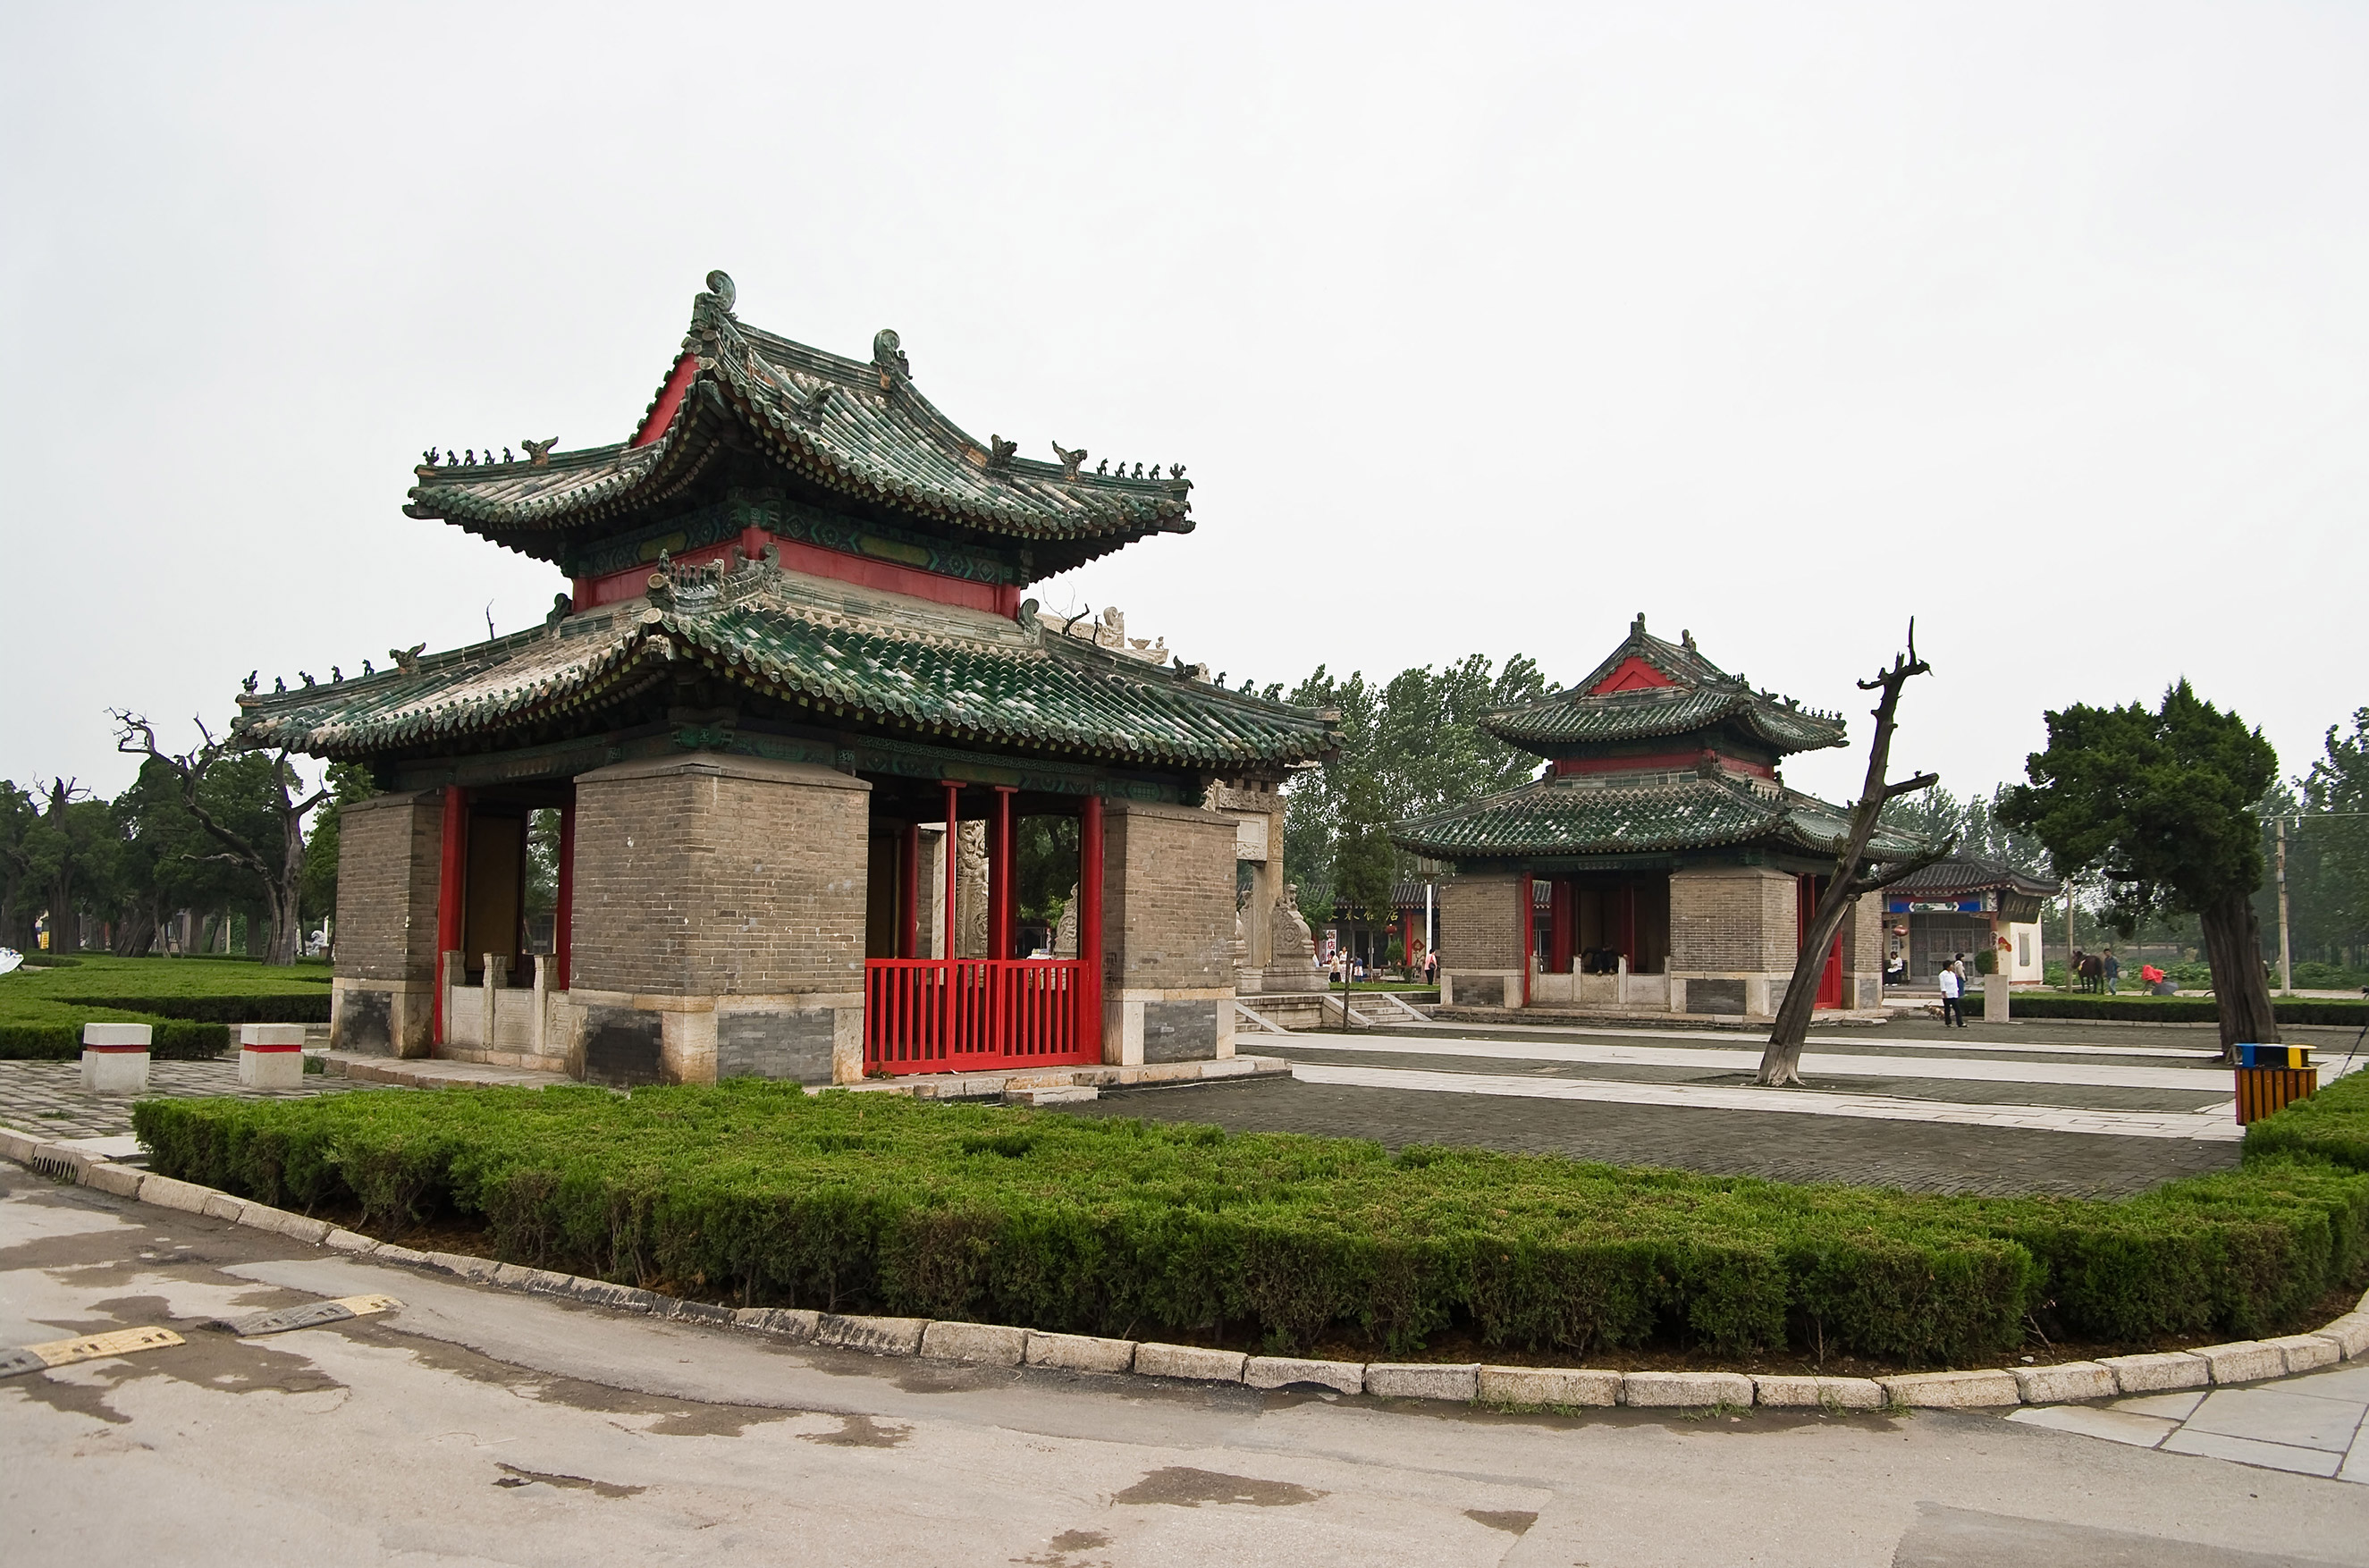 A view of memorial buildings at the Cemetery of Confucius in Qufu city, Shandong province, China, on May 22, 2014